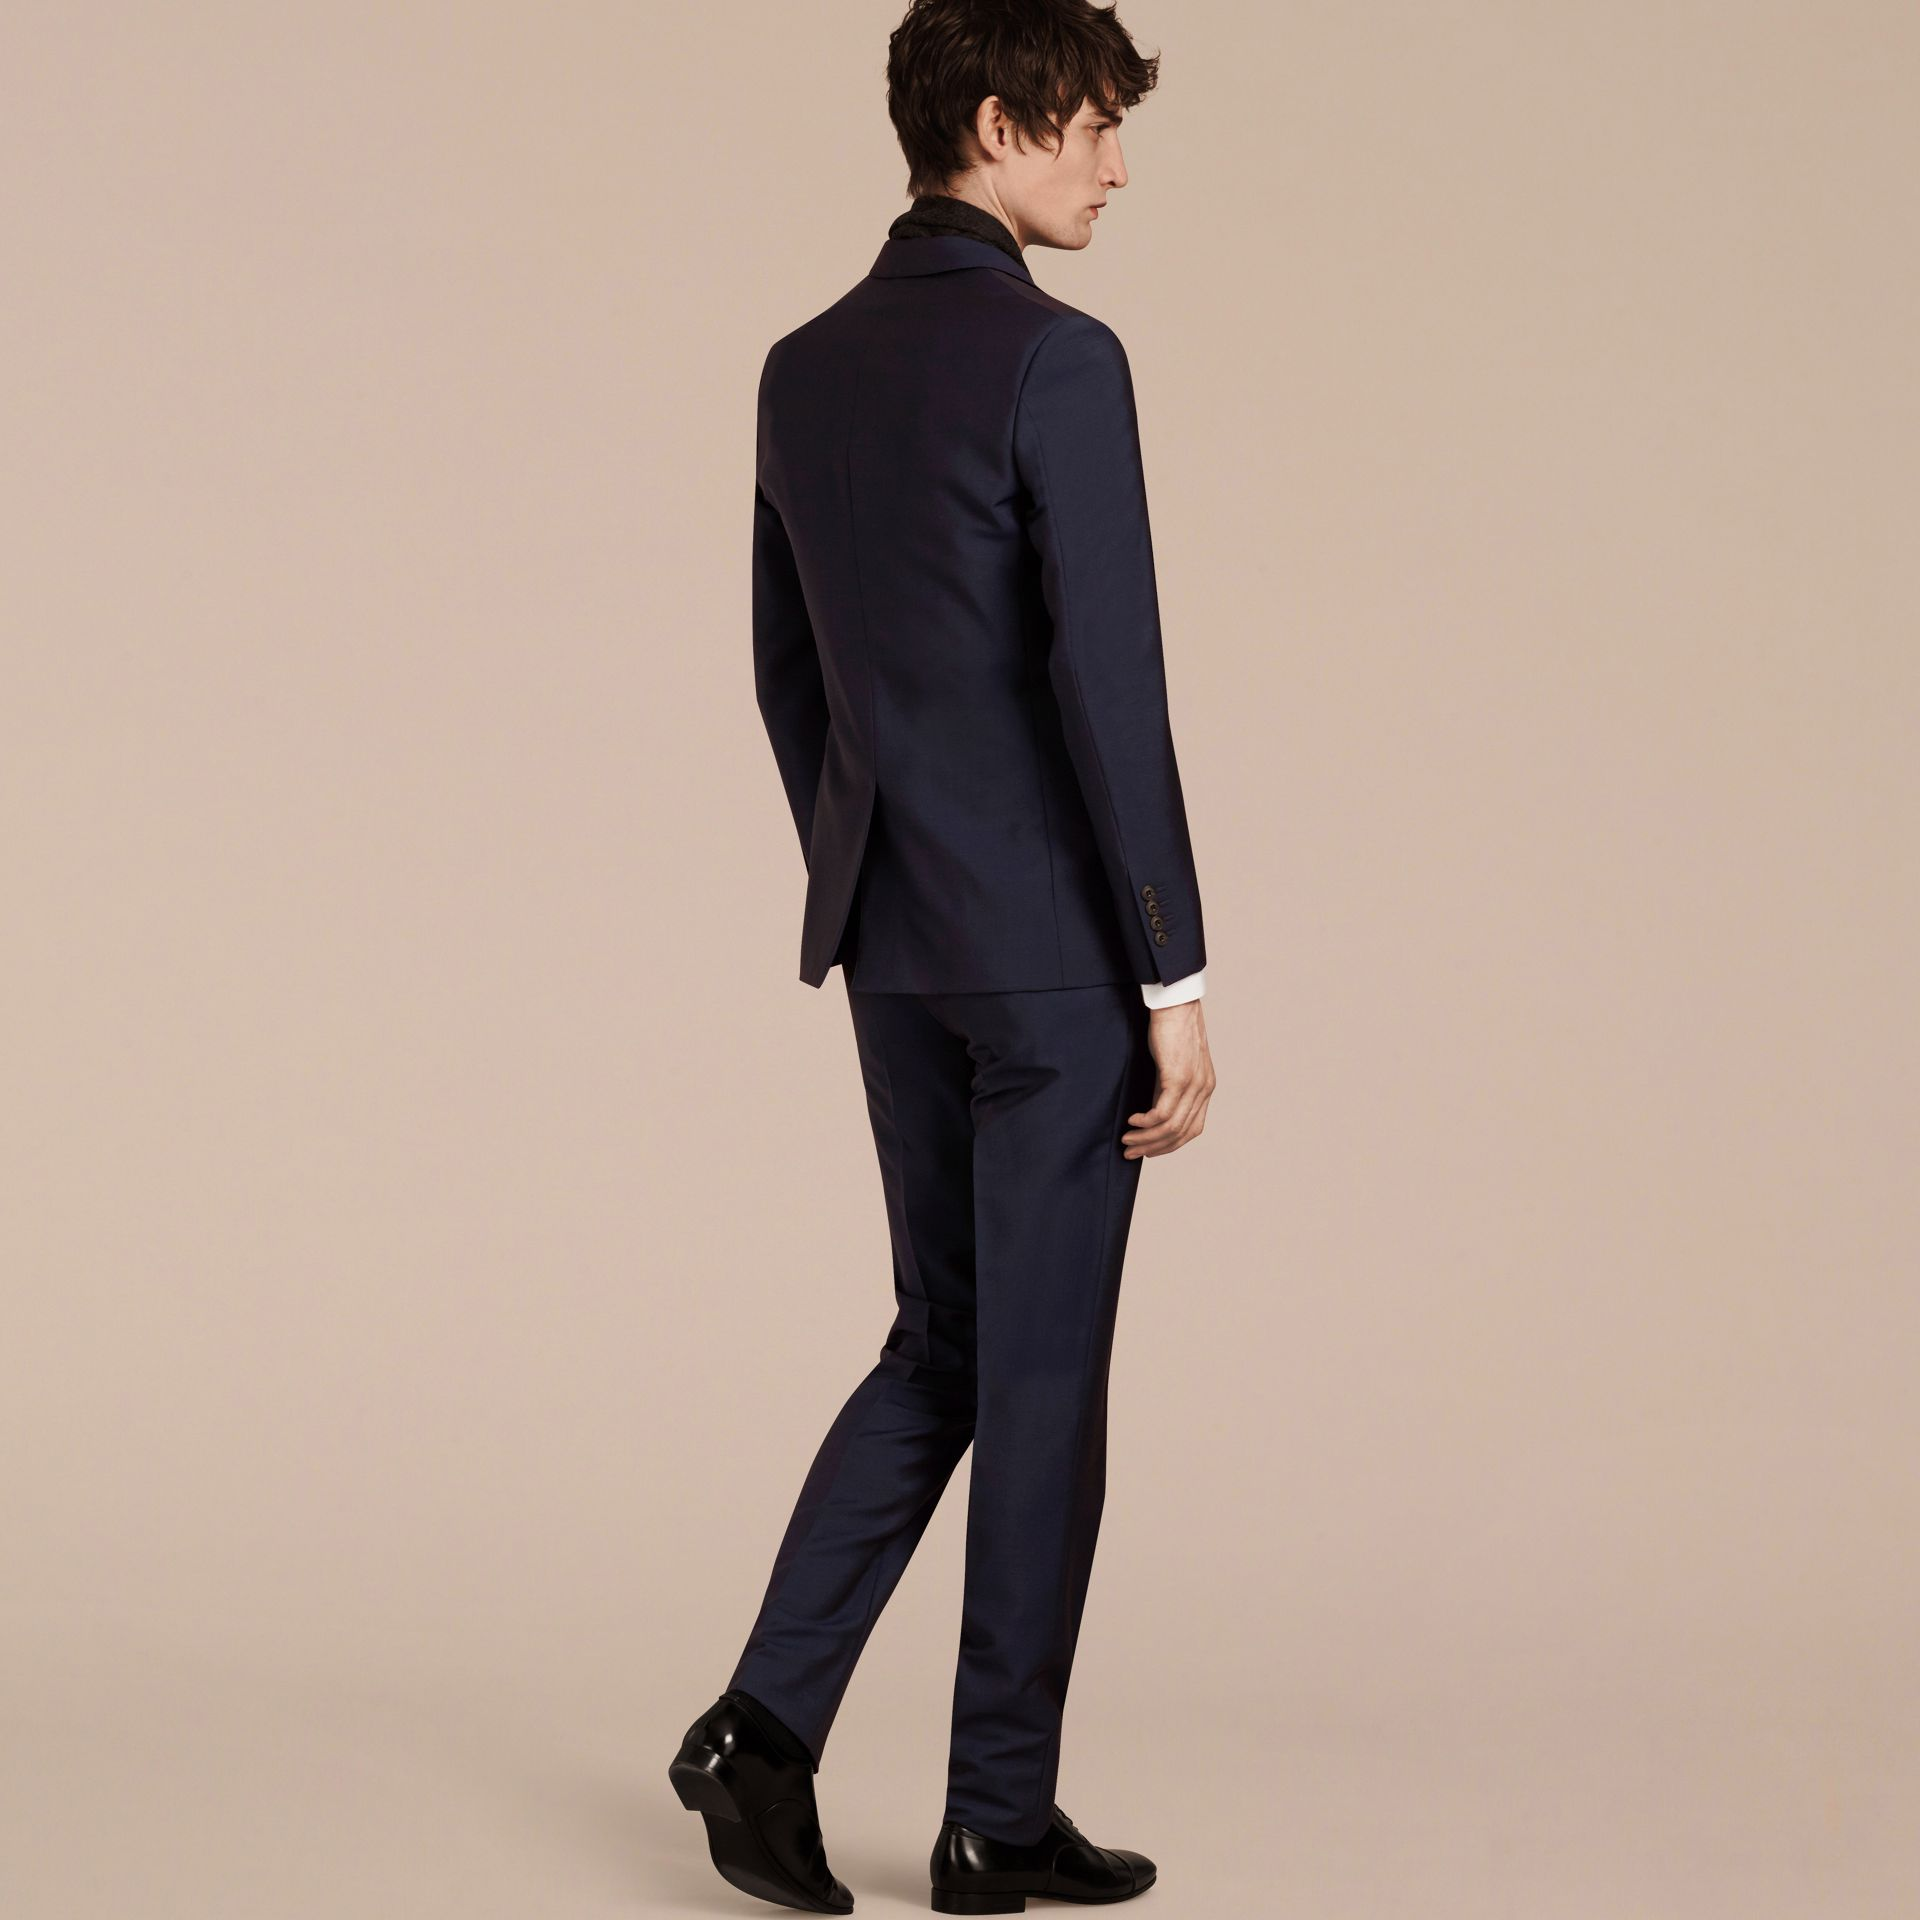 Slim Fit Wool Mohair Part-canvas Suit in Royal Navy - Men | Burberry Canada - gallery image 4